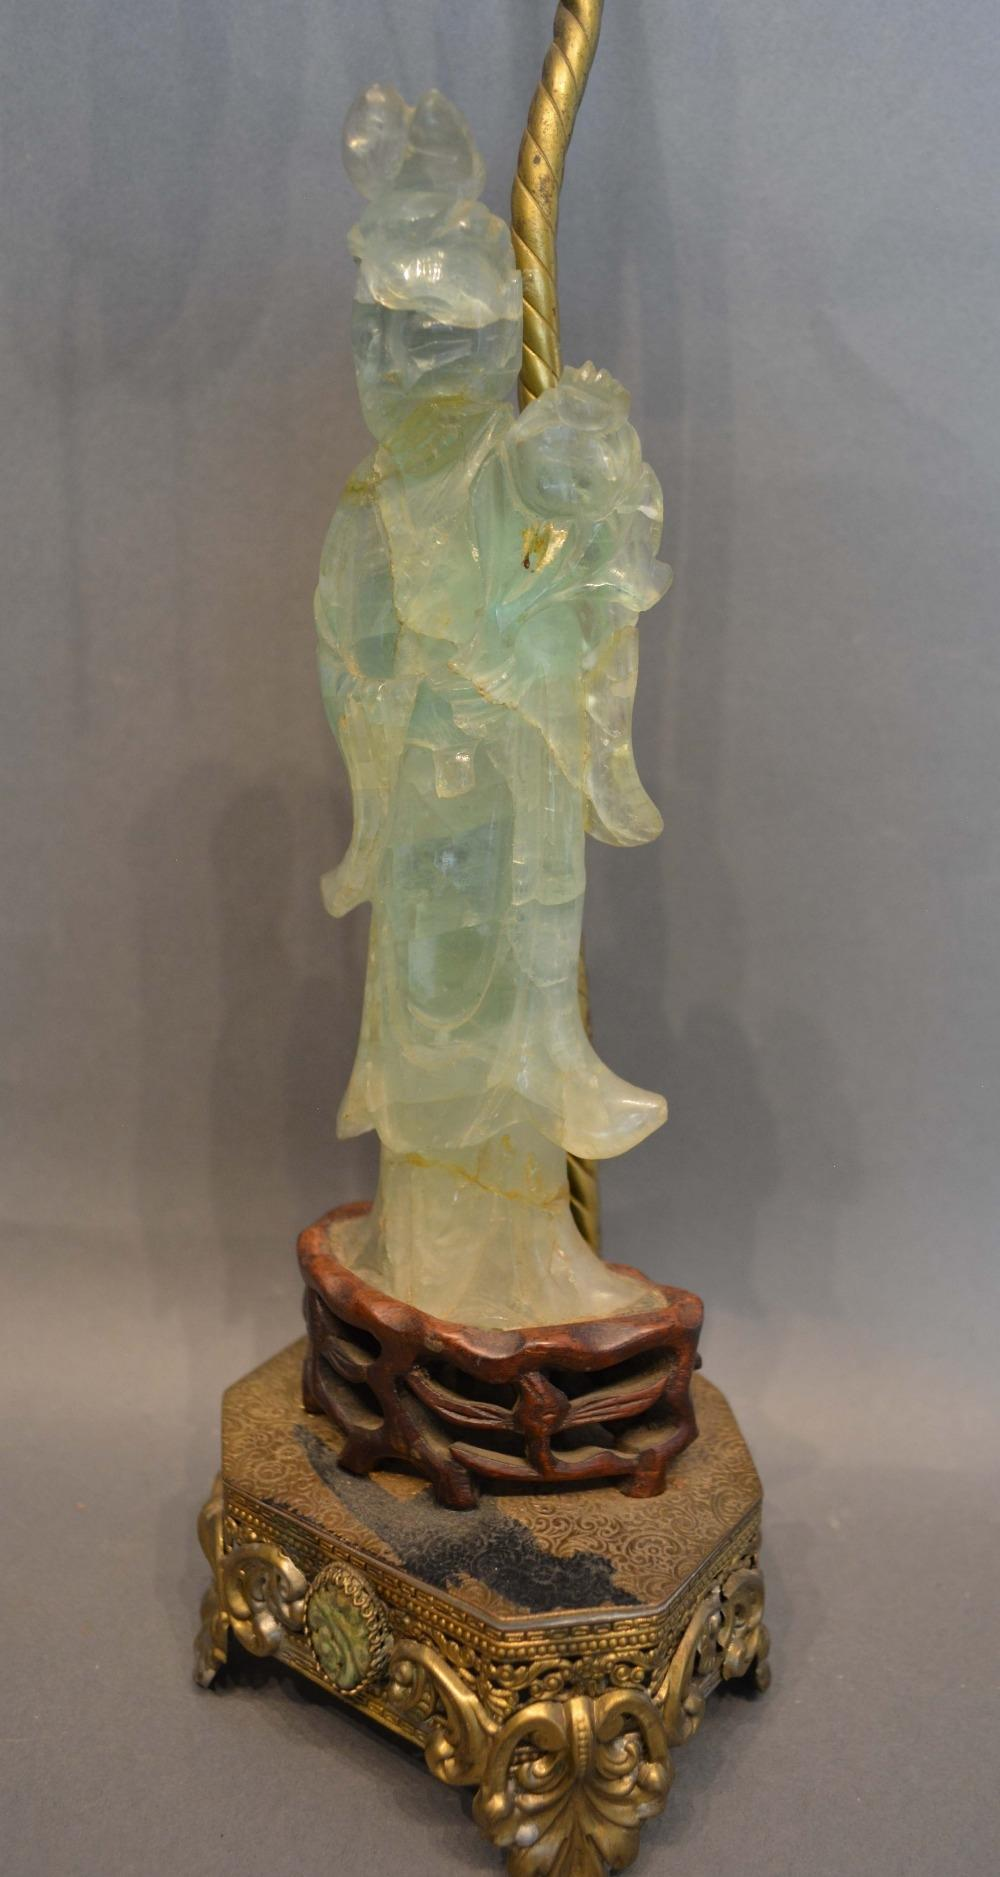 Lot 268 - A Chinese Jade Figure Mounted on a Table Lamp, the figure 23cm tall